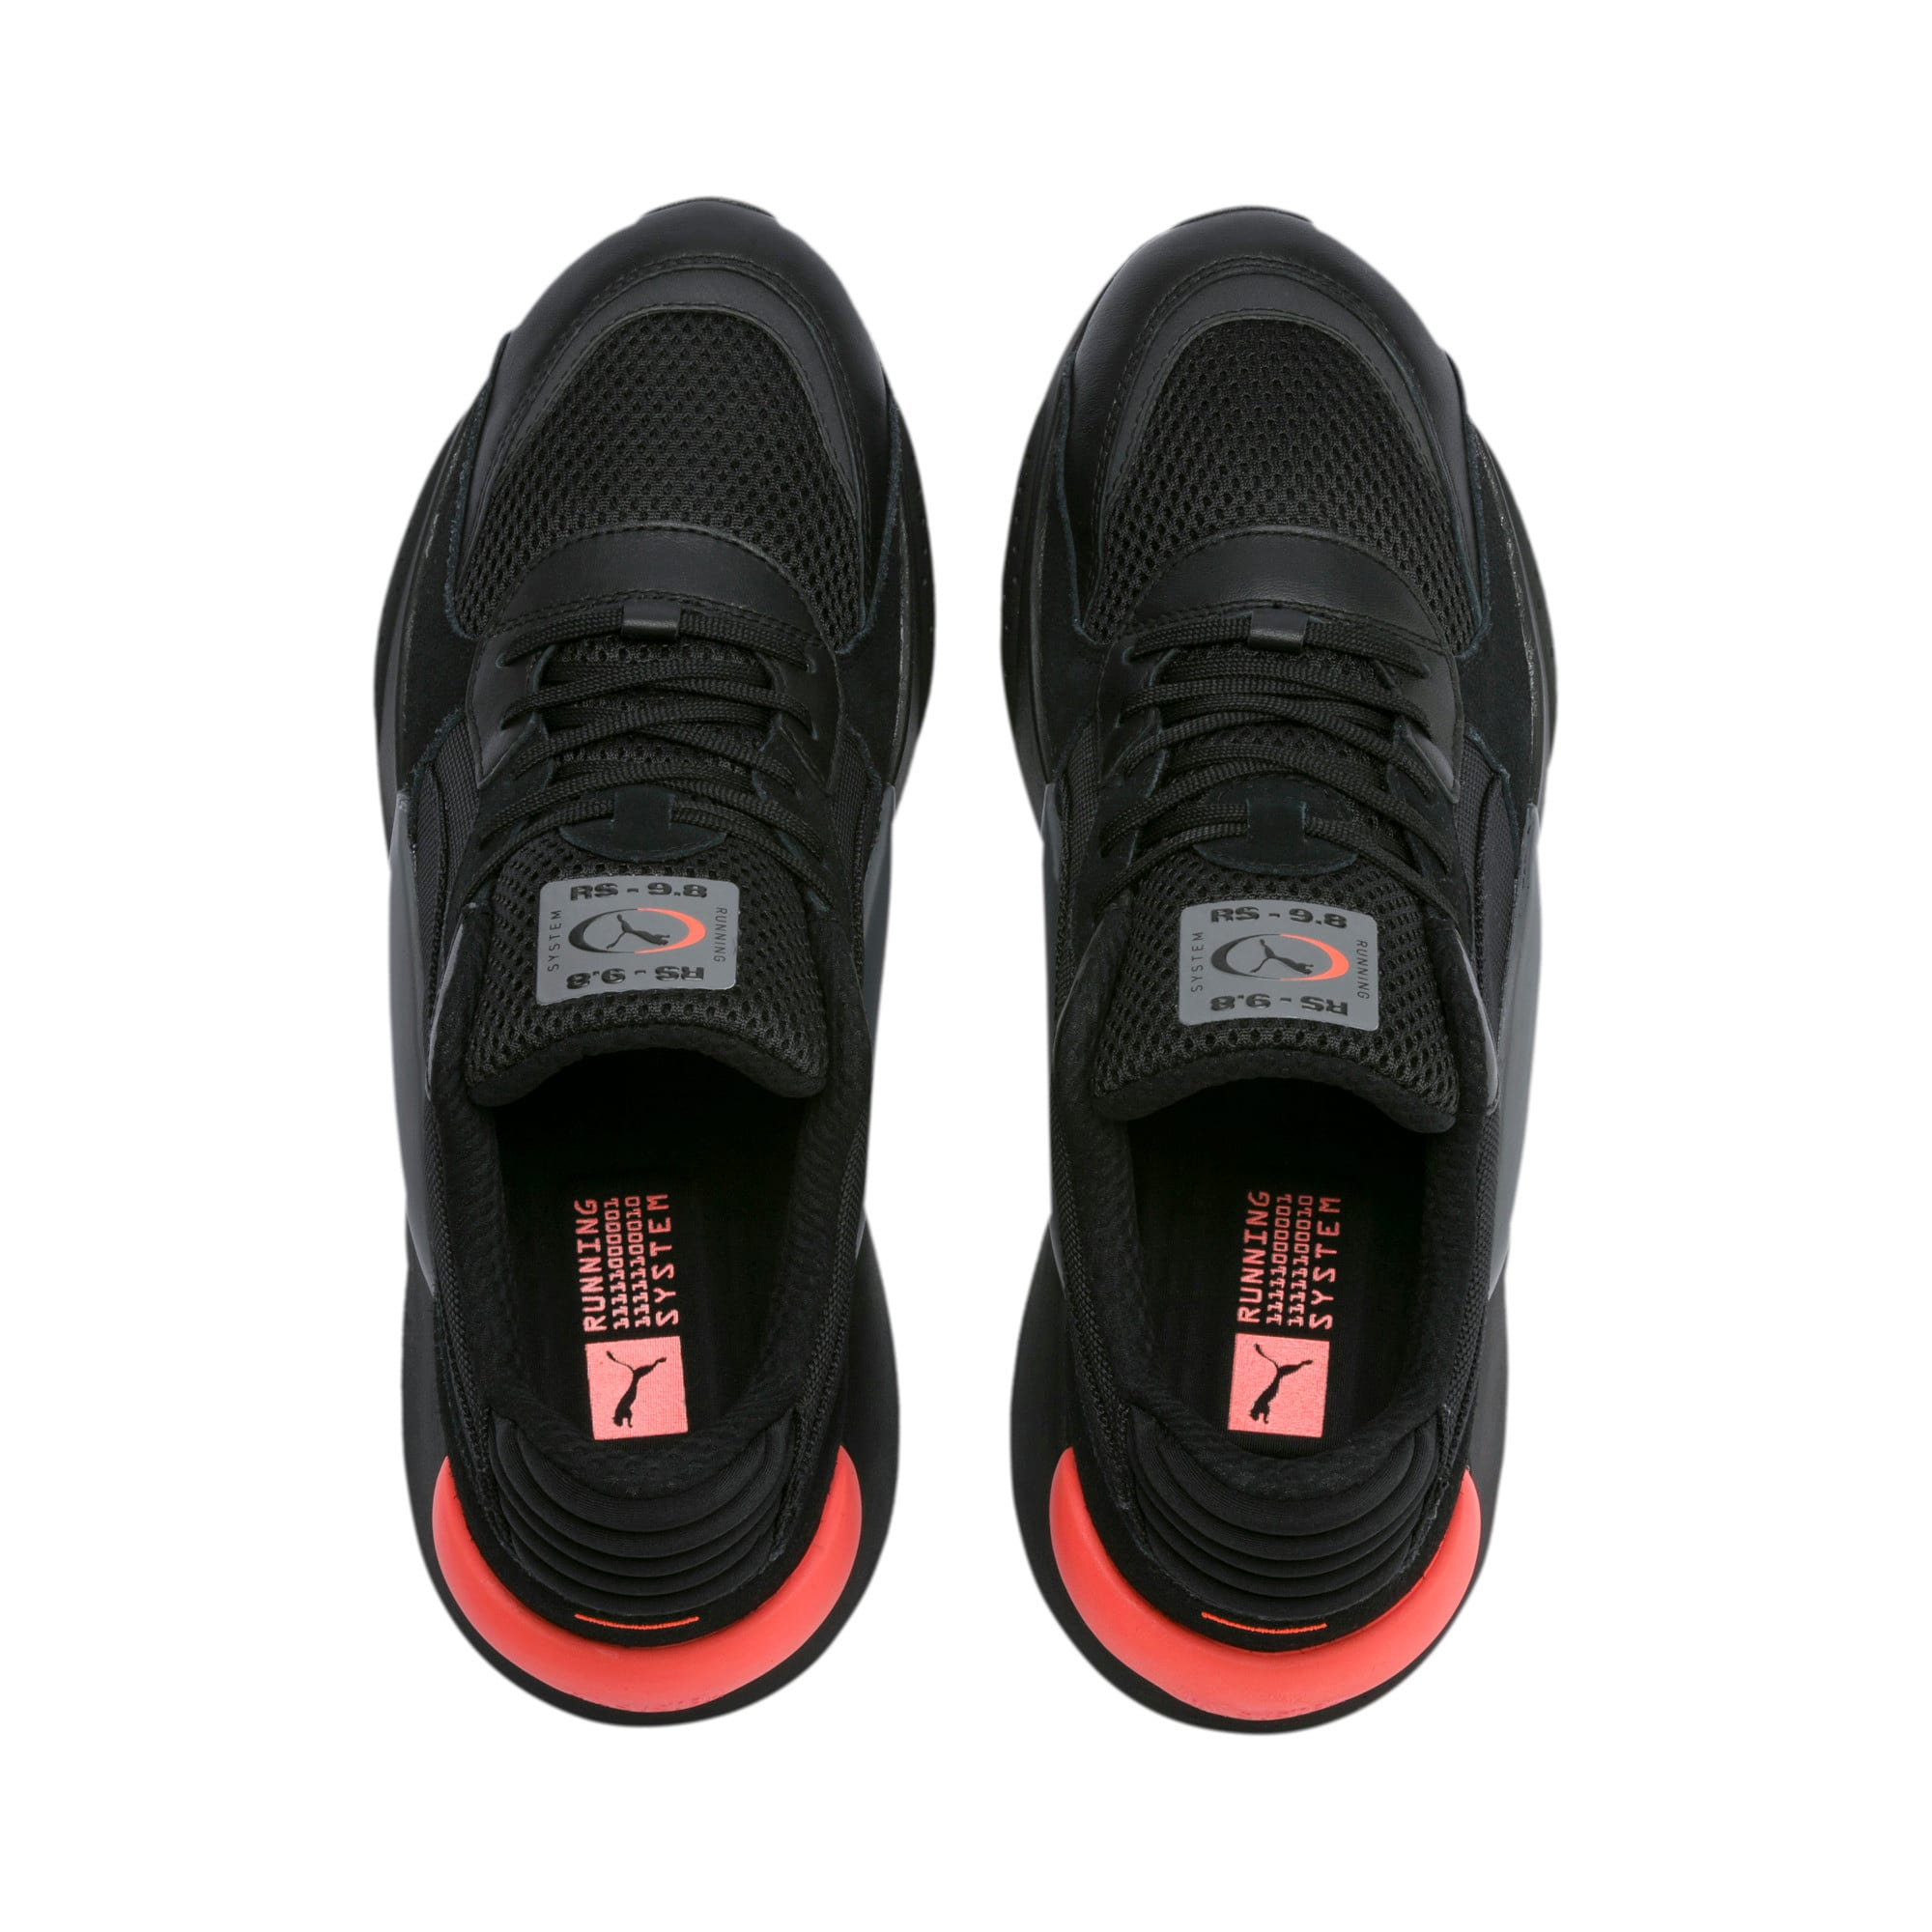 Thumbnail 6 of RS 9.8 コズミック スニーカー, Puma Black, medium-JPN